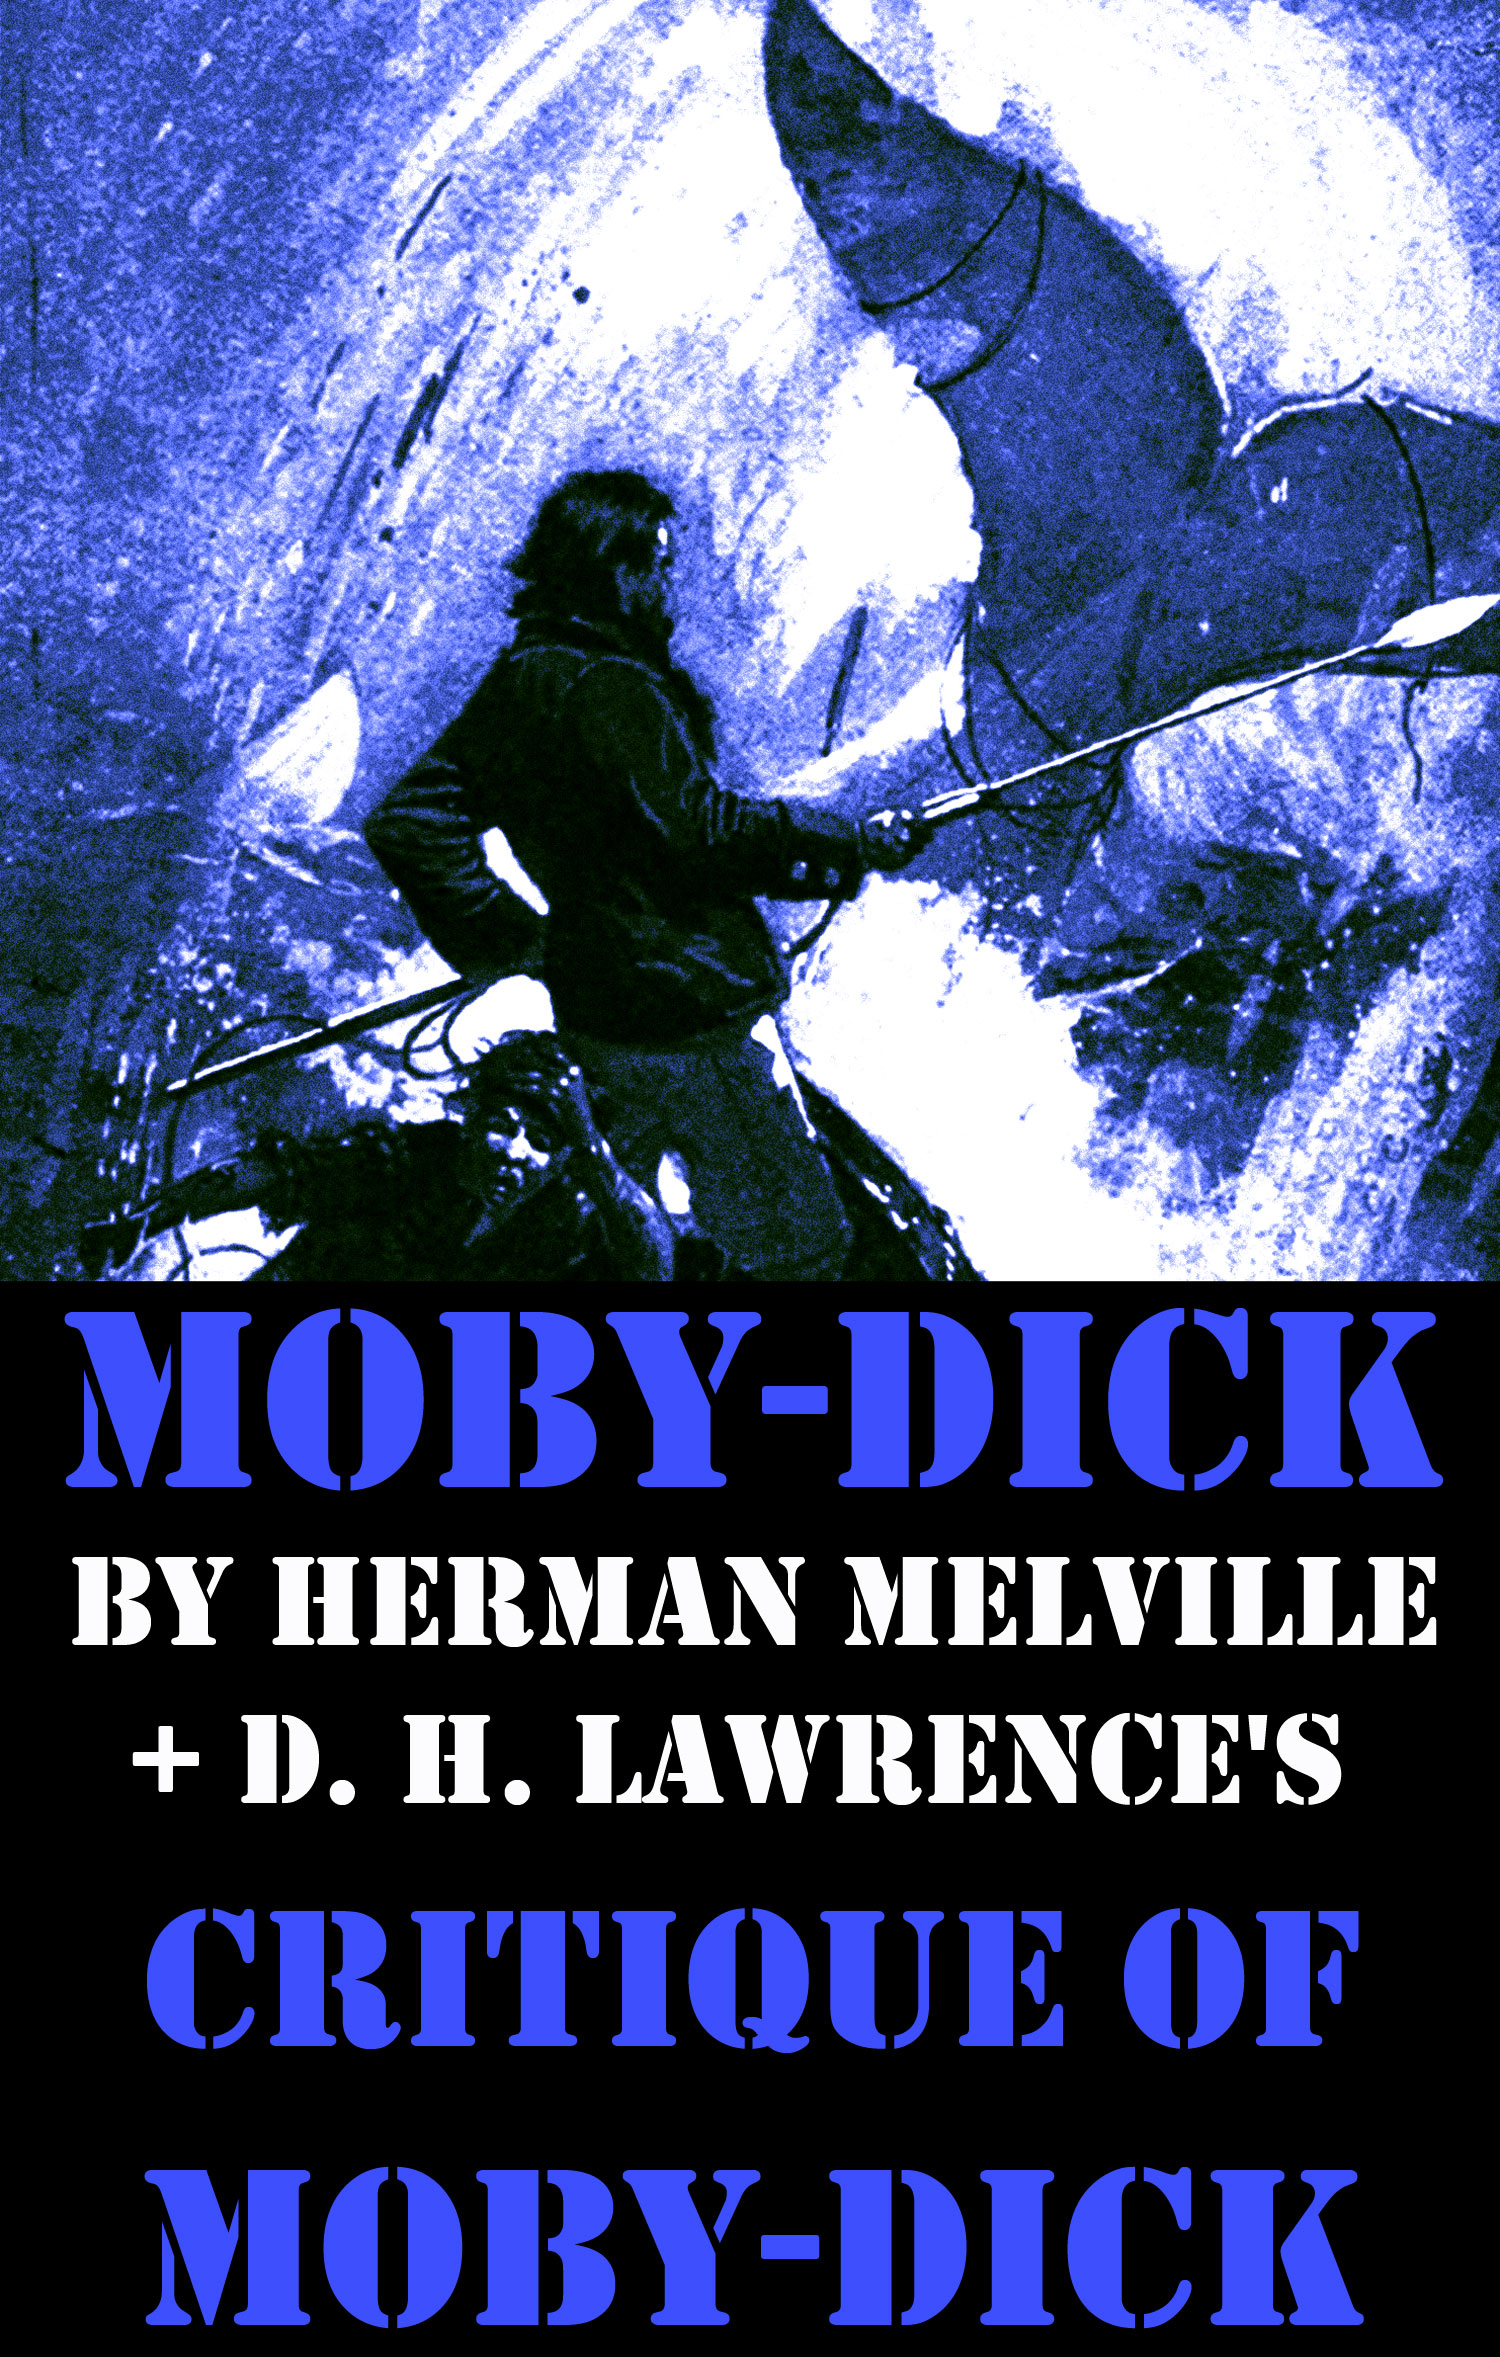 Moby-Dick by Herman Melville + D. H. Lawrence's critique of Moby-Dick (Unabridged)